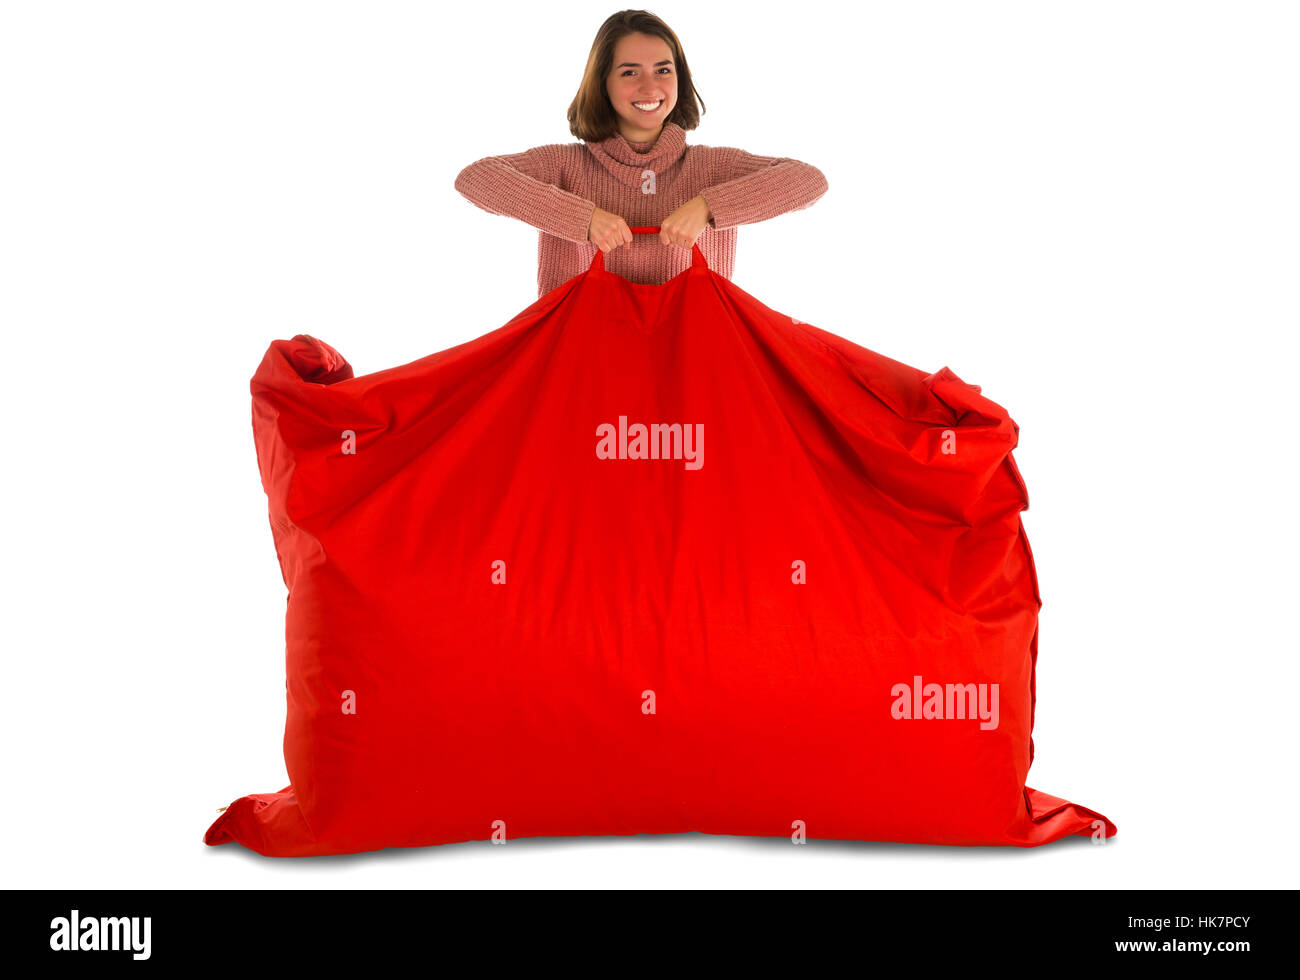 Young smiling woman standing and holding red rectangular shaped beanbag sofa chair for living room or other room - Stock Image